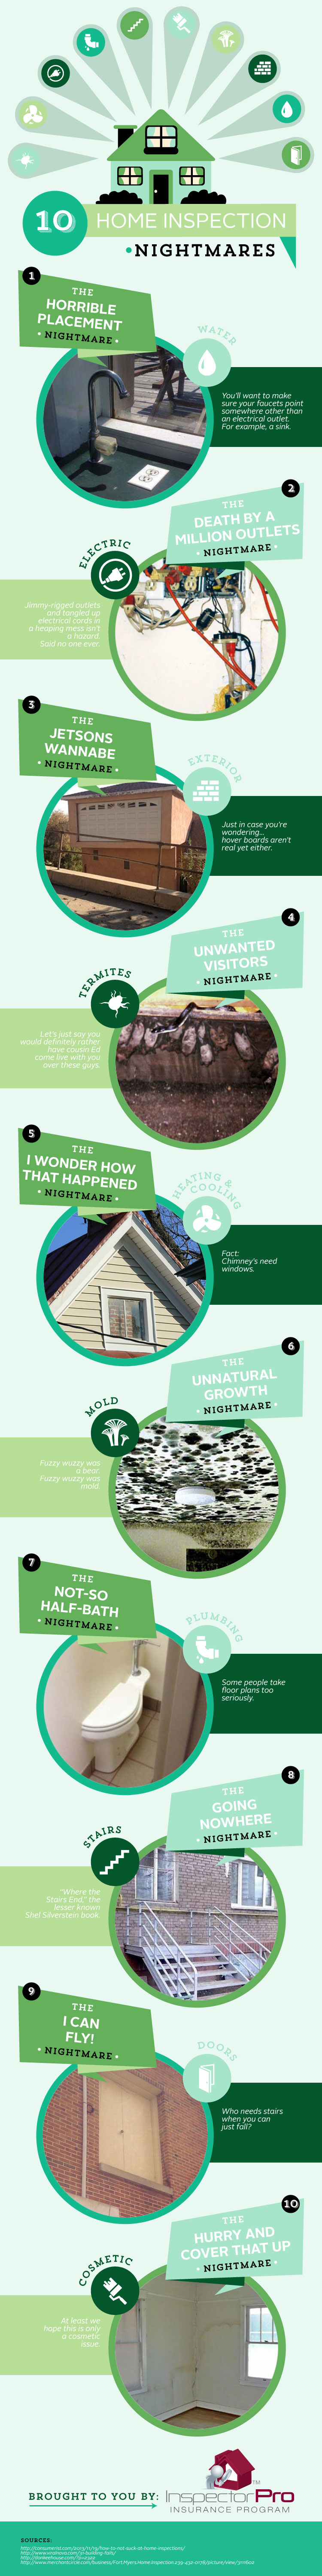 Home-Inspection-Nightmares-infographic